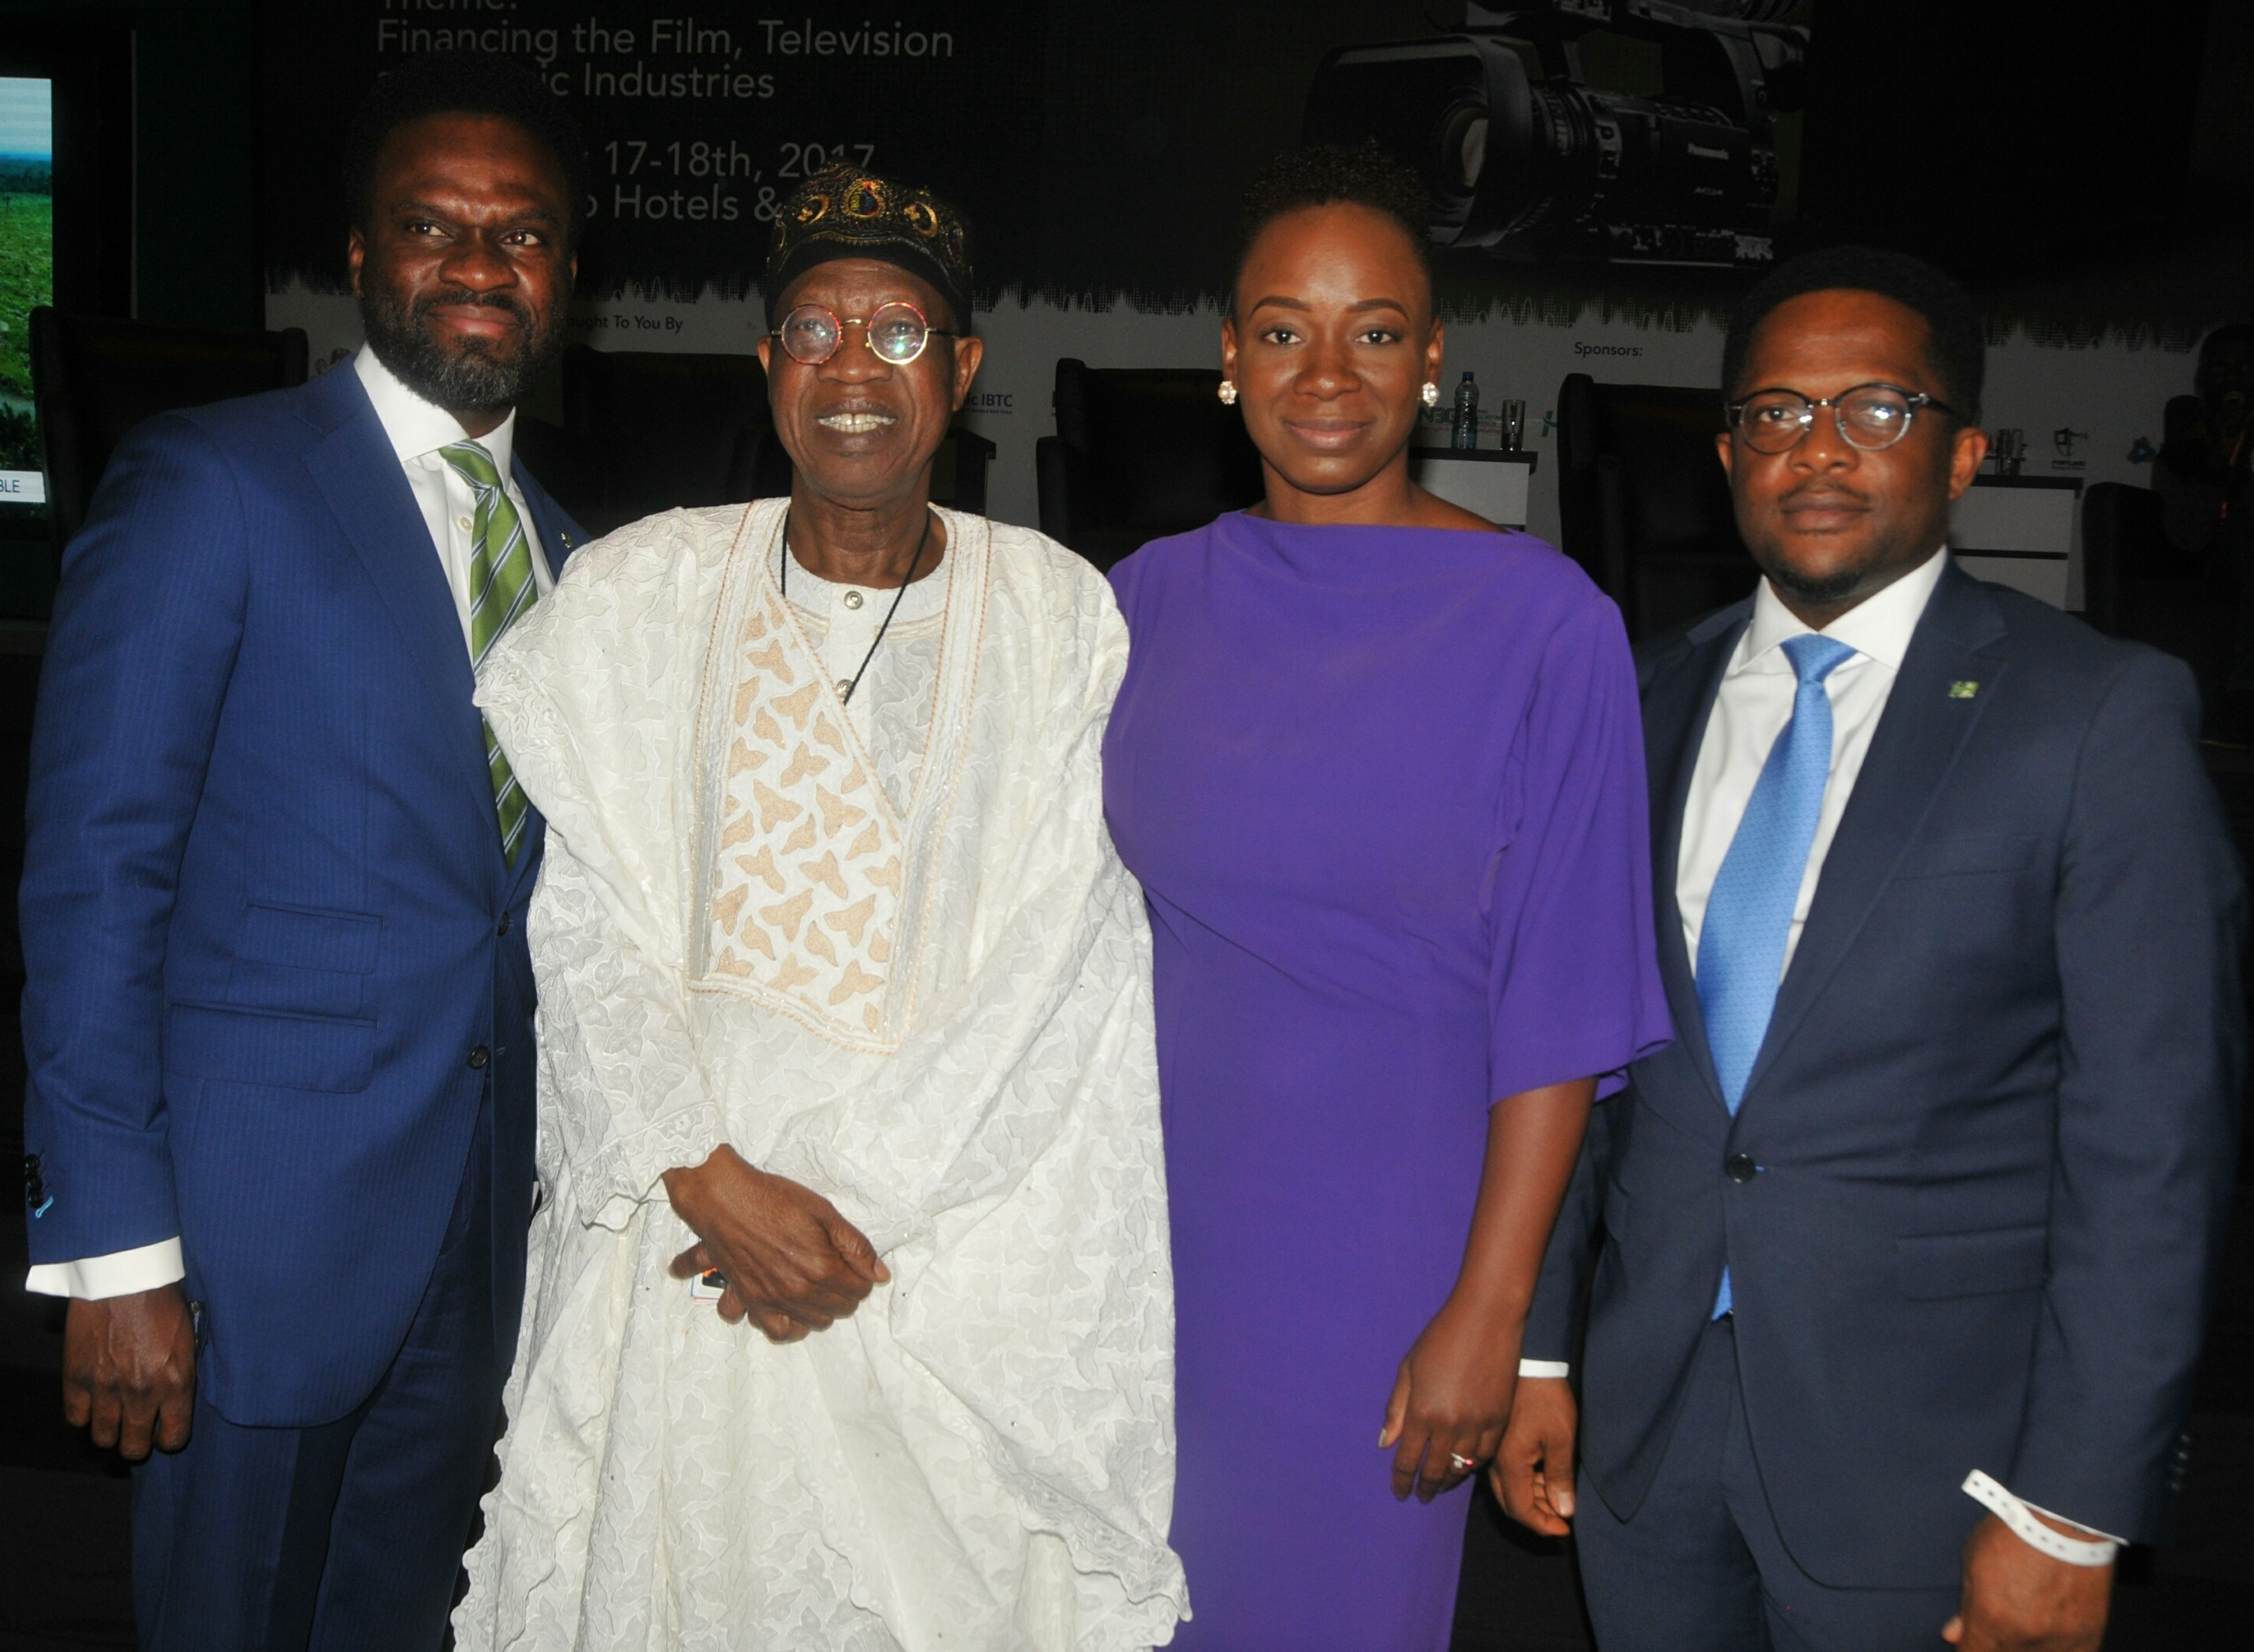 Buhari Administration Commends Heritage Bank's Commitment to Entertainment Industry